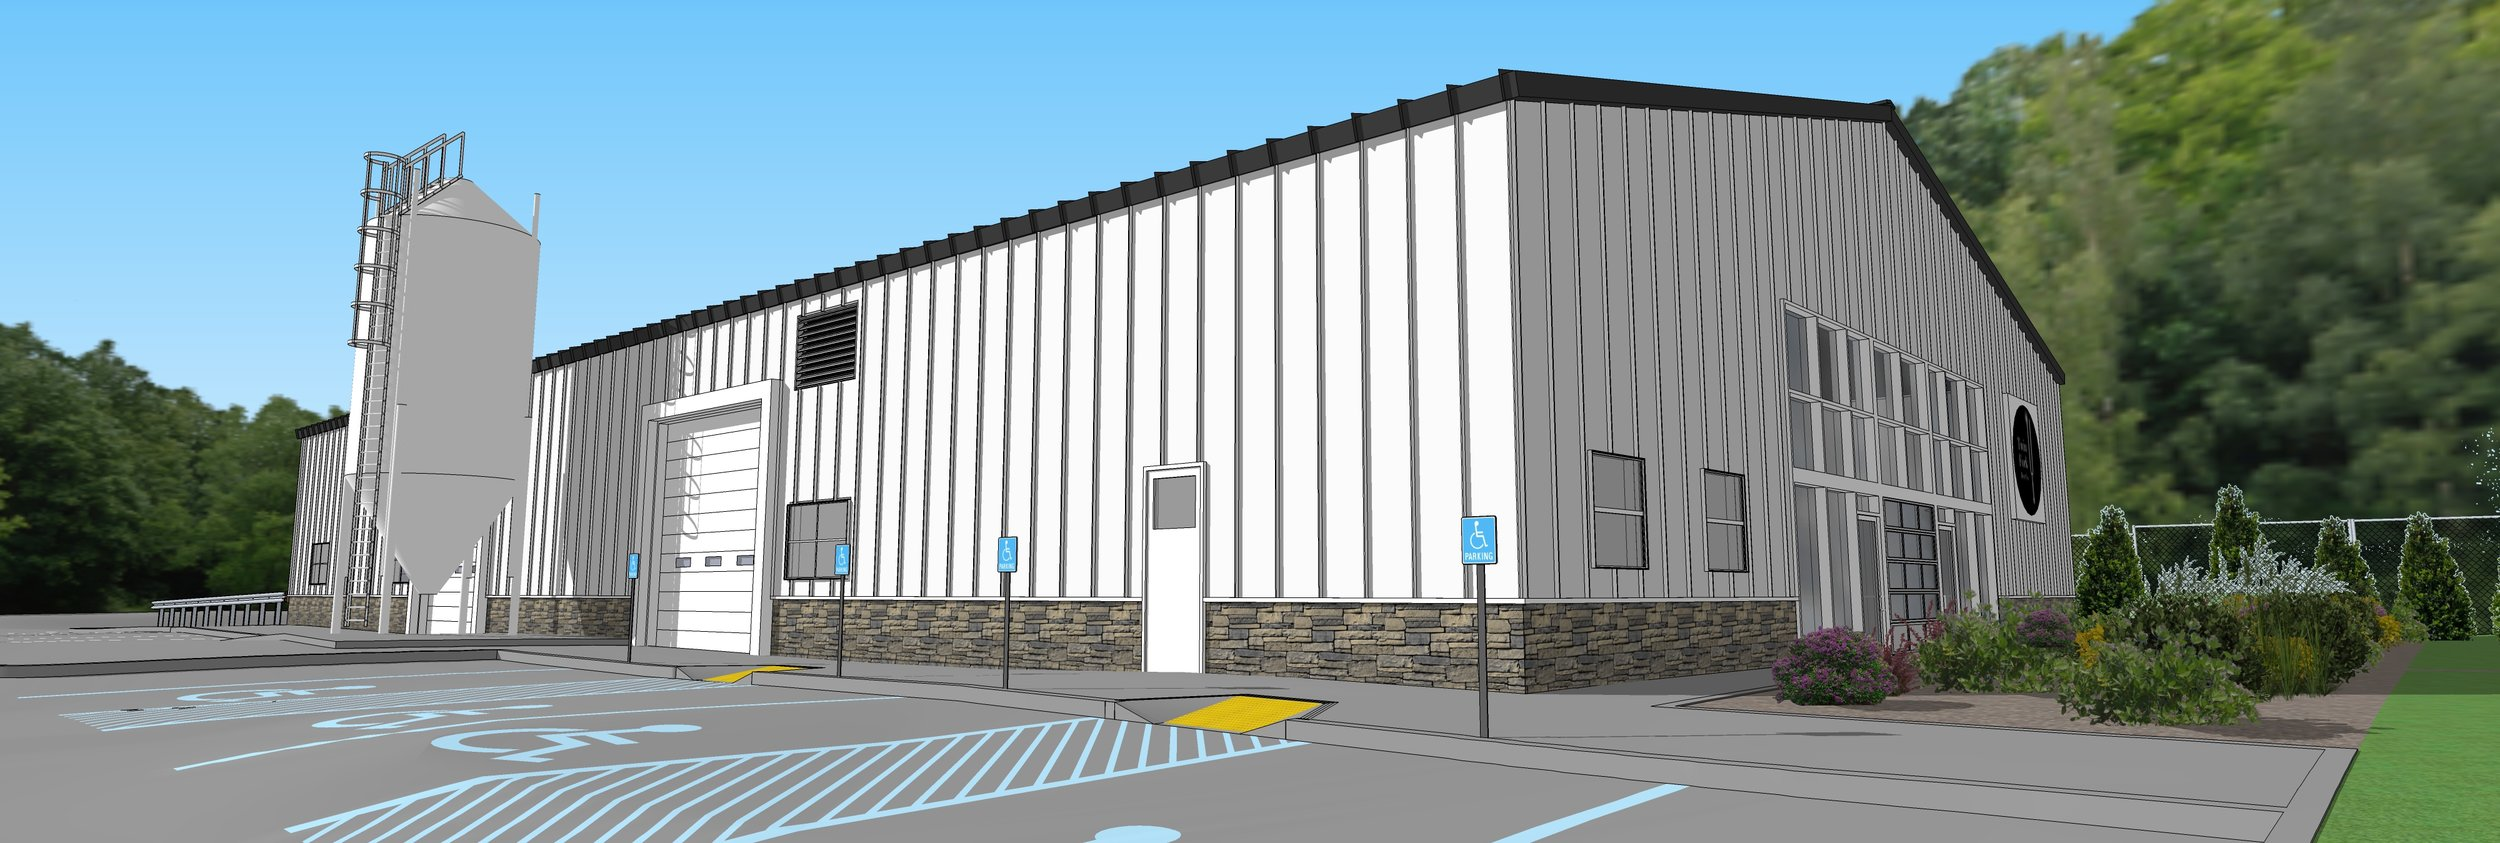 3D Rendering of our Brewery and Tasting Room on Raynor Avenue Riverhead